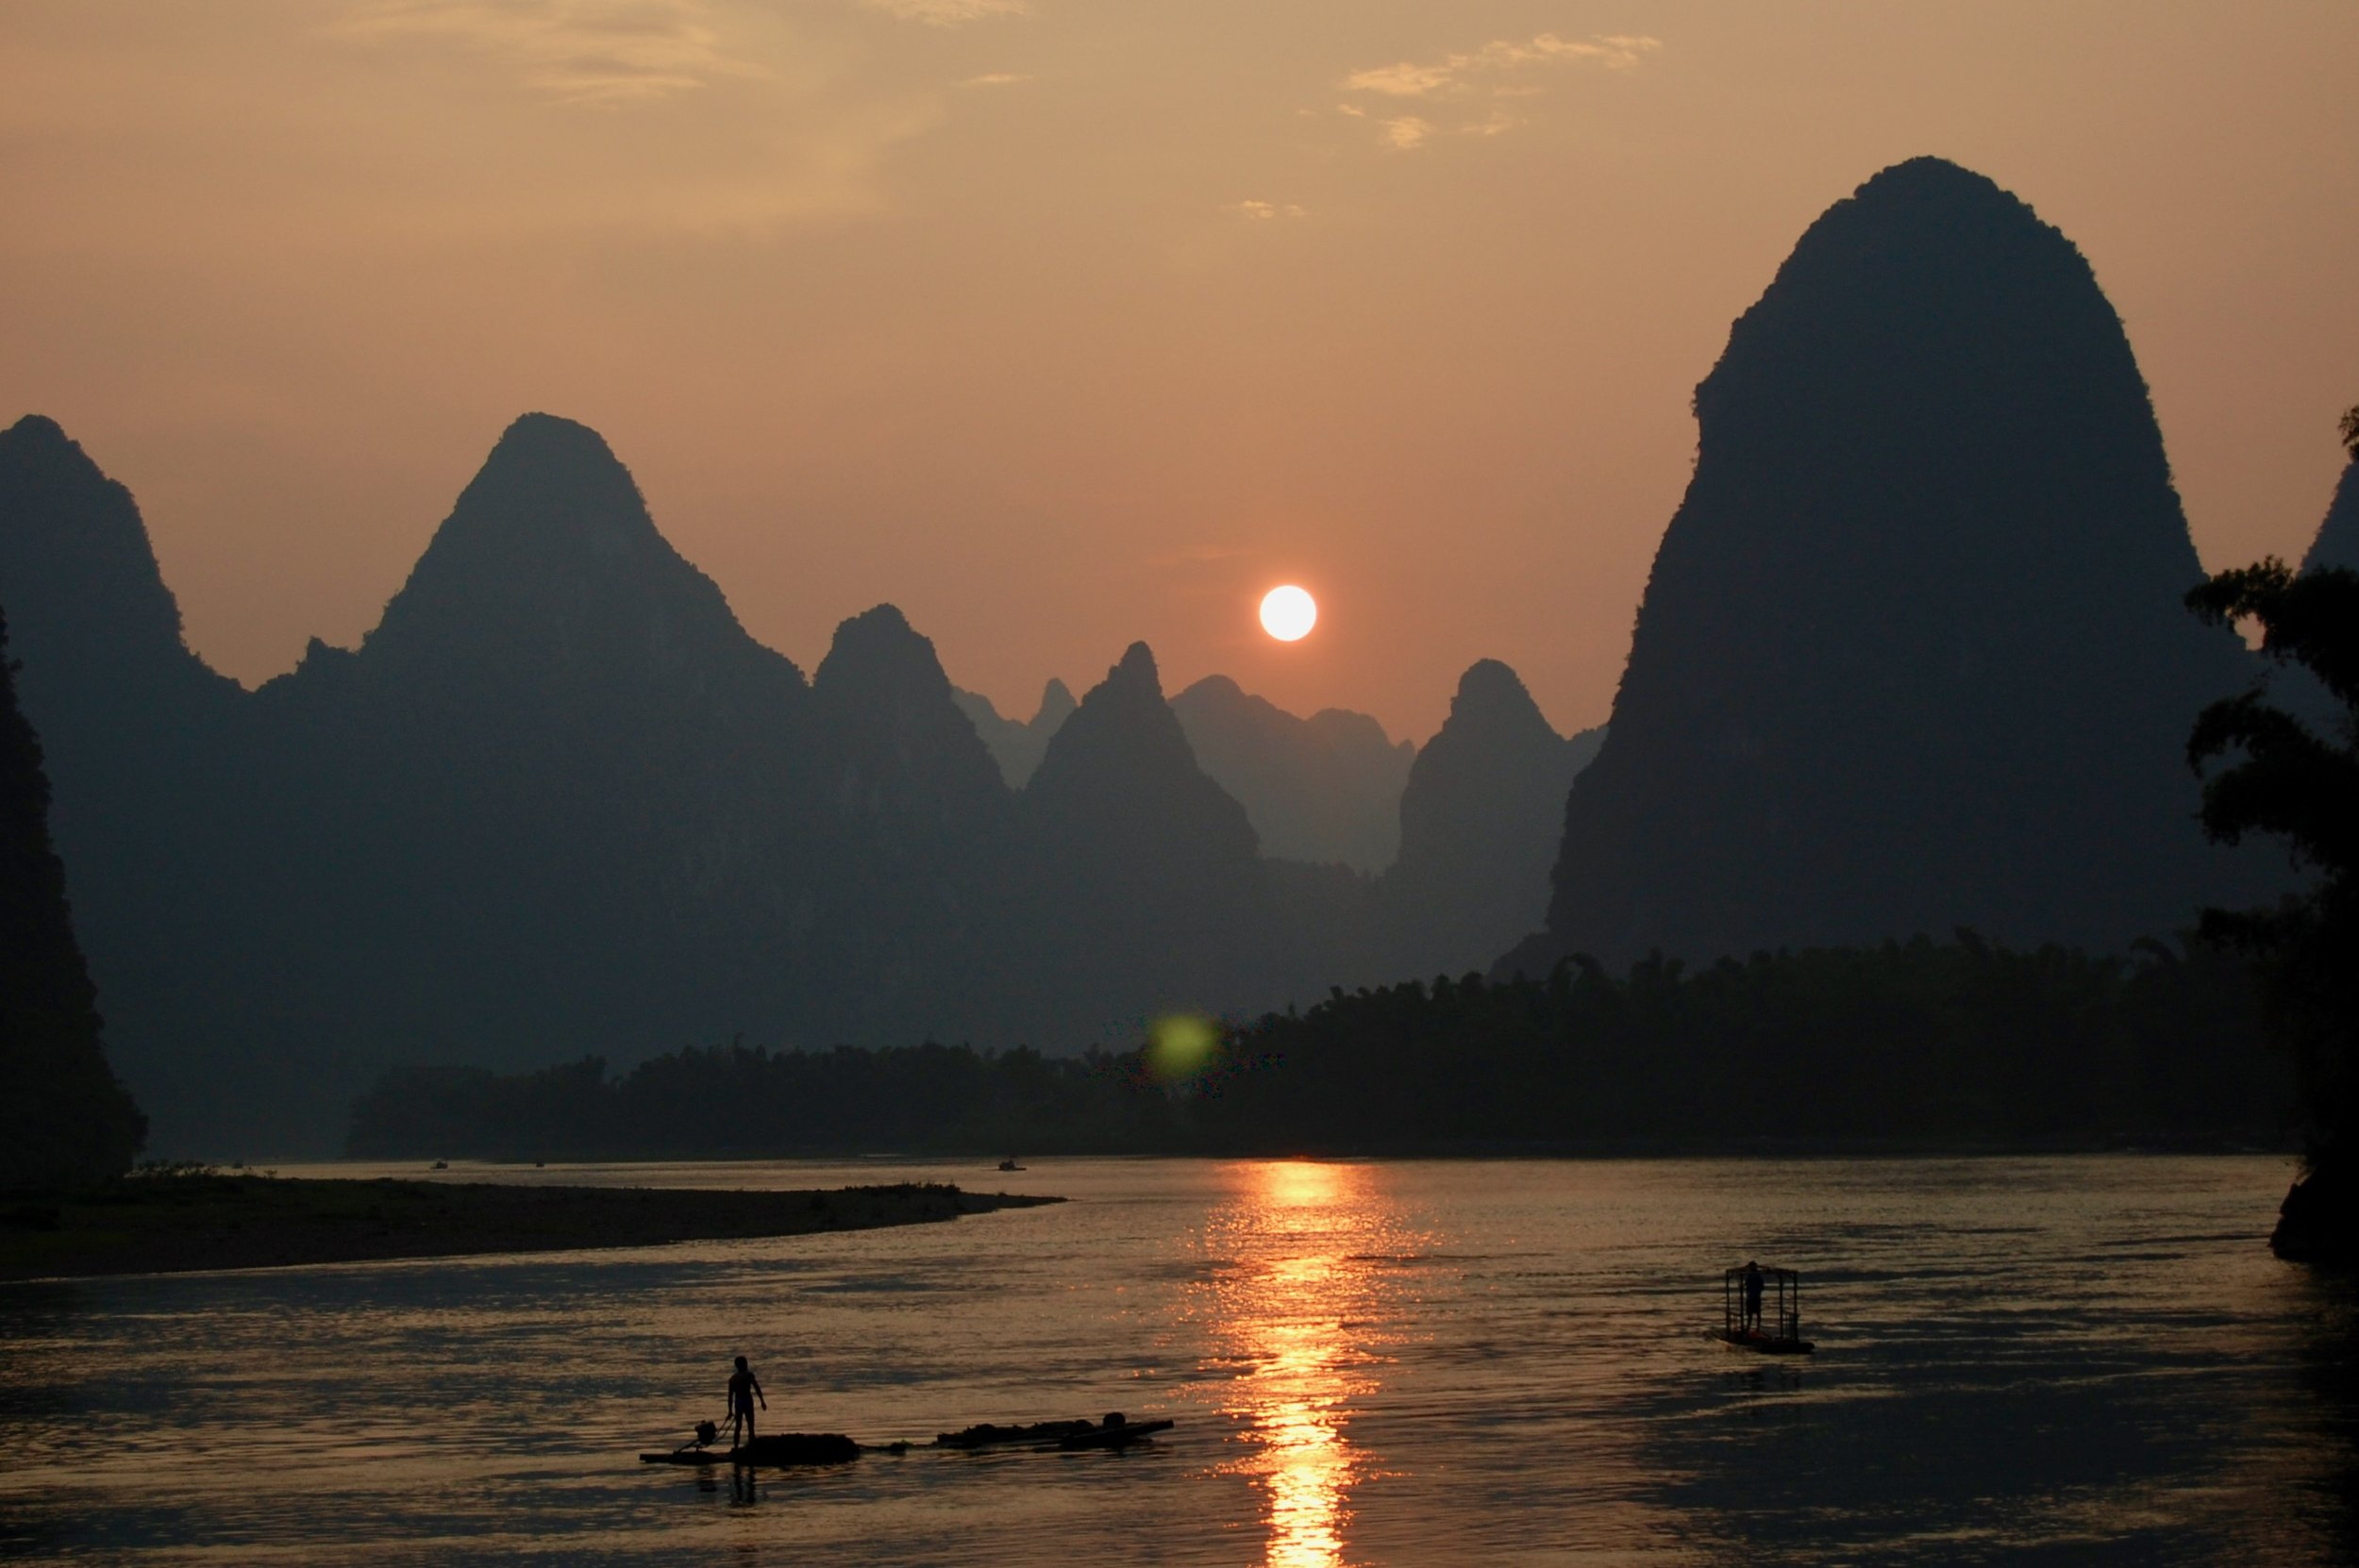 A fisherman plies his trade as another day draws to a close on the Li River. The view from this exact location is featured on the back side of the 20 yuan note (Yangshuo, China)